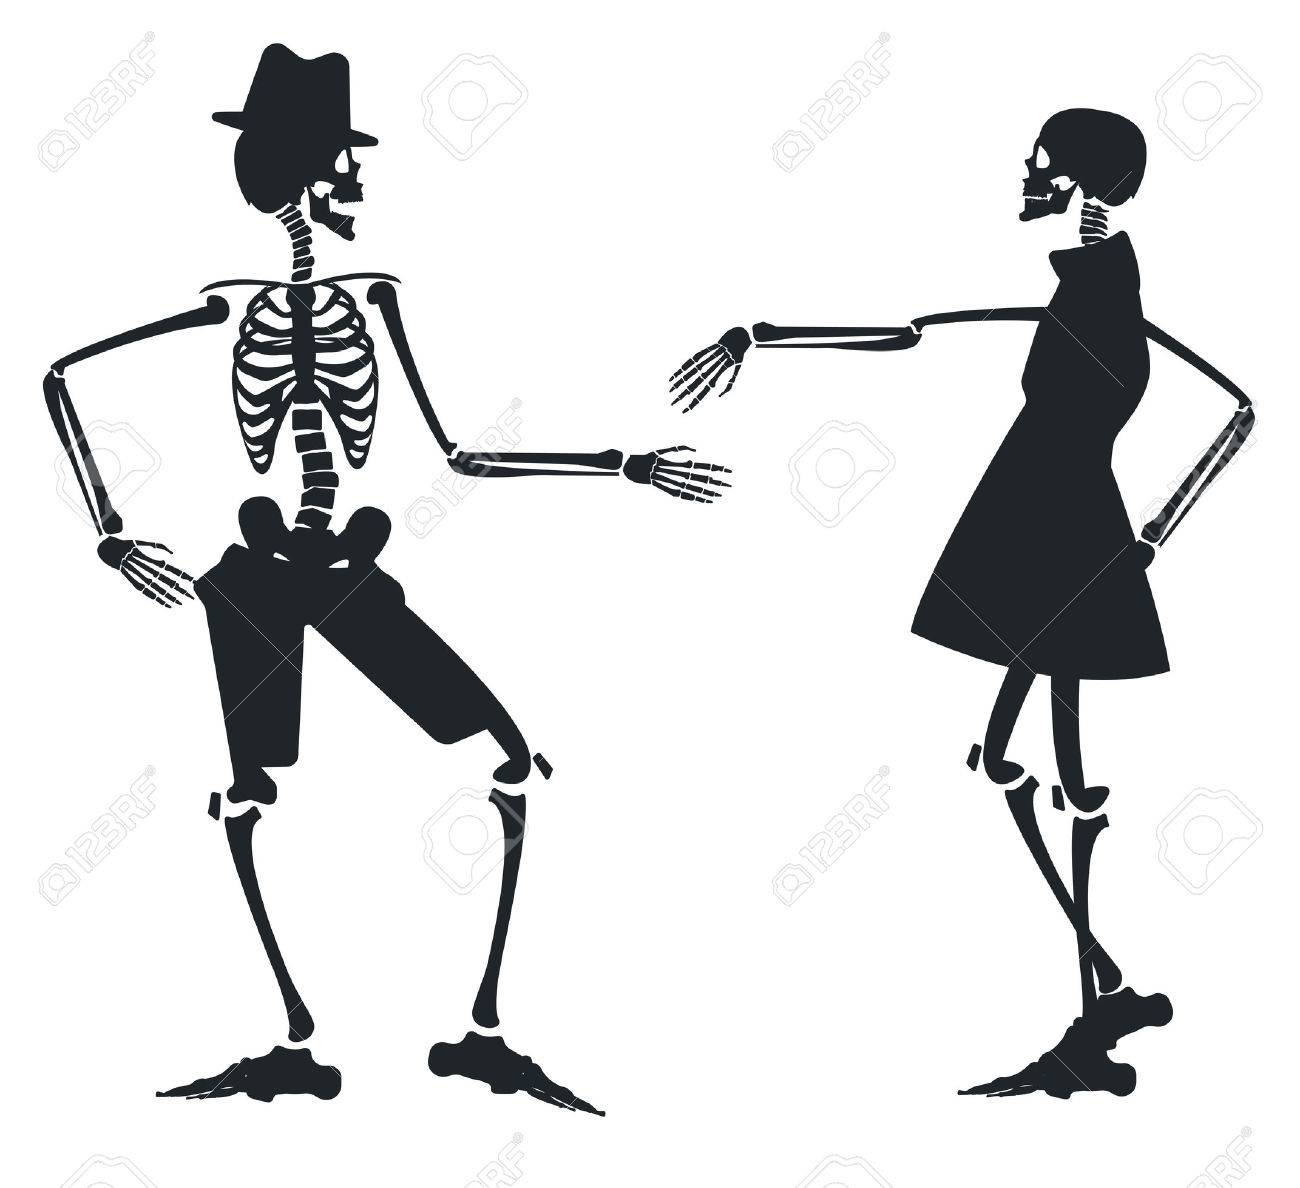 1 060 dancing skeleton stock vector illustration and royalty free rh 123rf com Witches Cauldron Clip Art Adult Halloween Clip Art